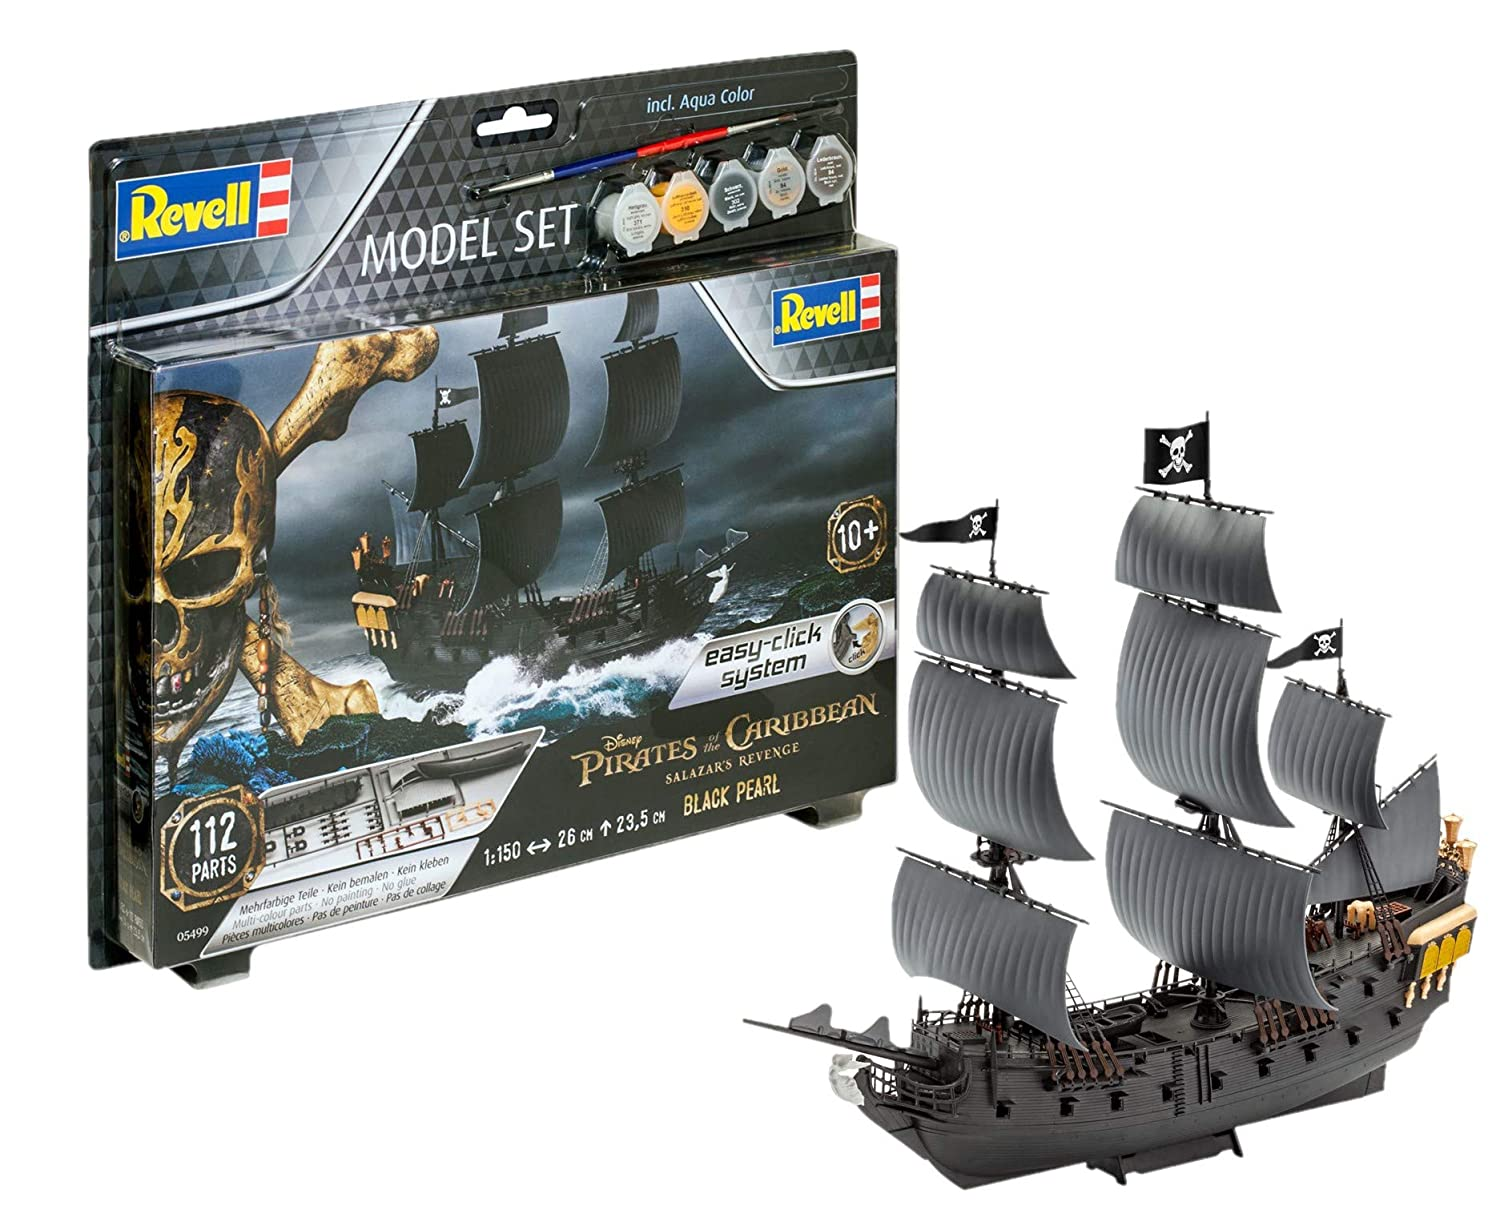 Revell 65499 - Pirates Of The Caribbean Model Set Black Pearl 1:150 Scale, B06X9CJ52R